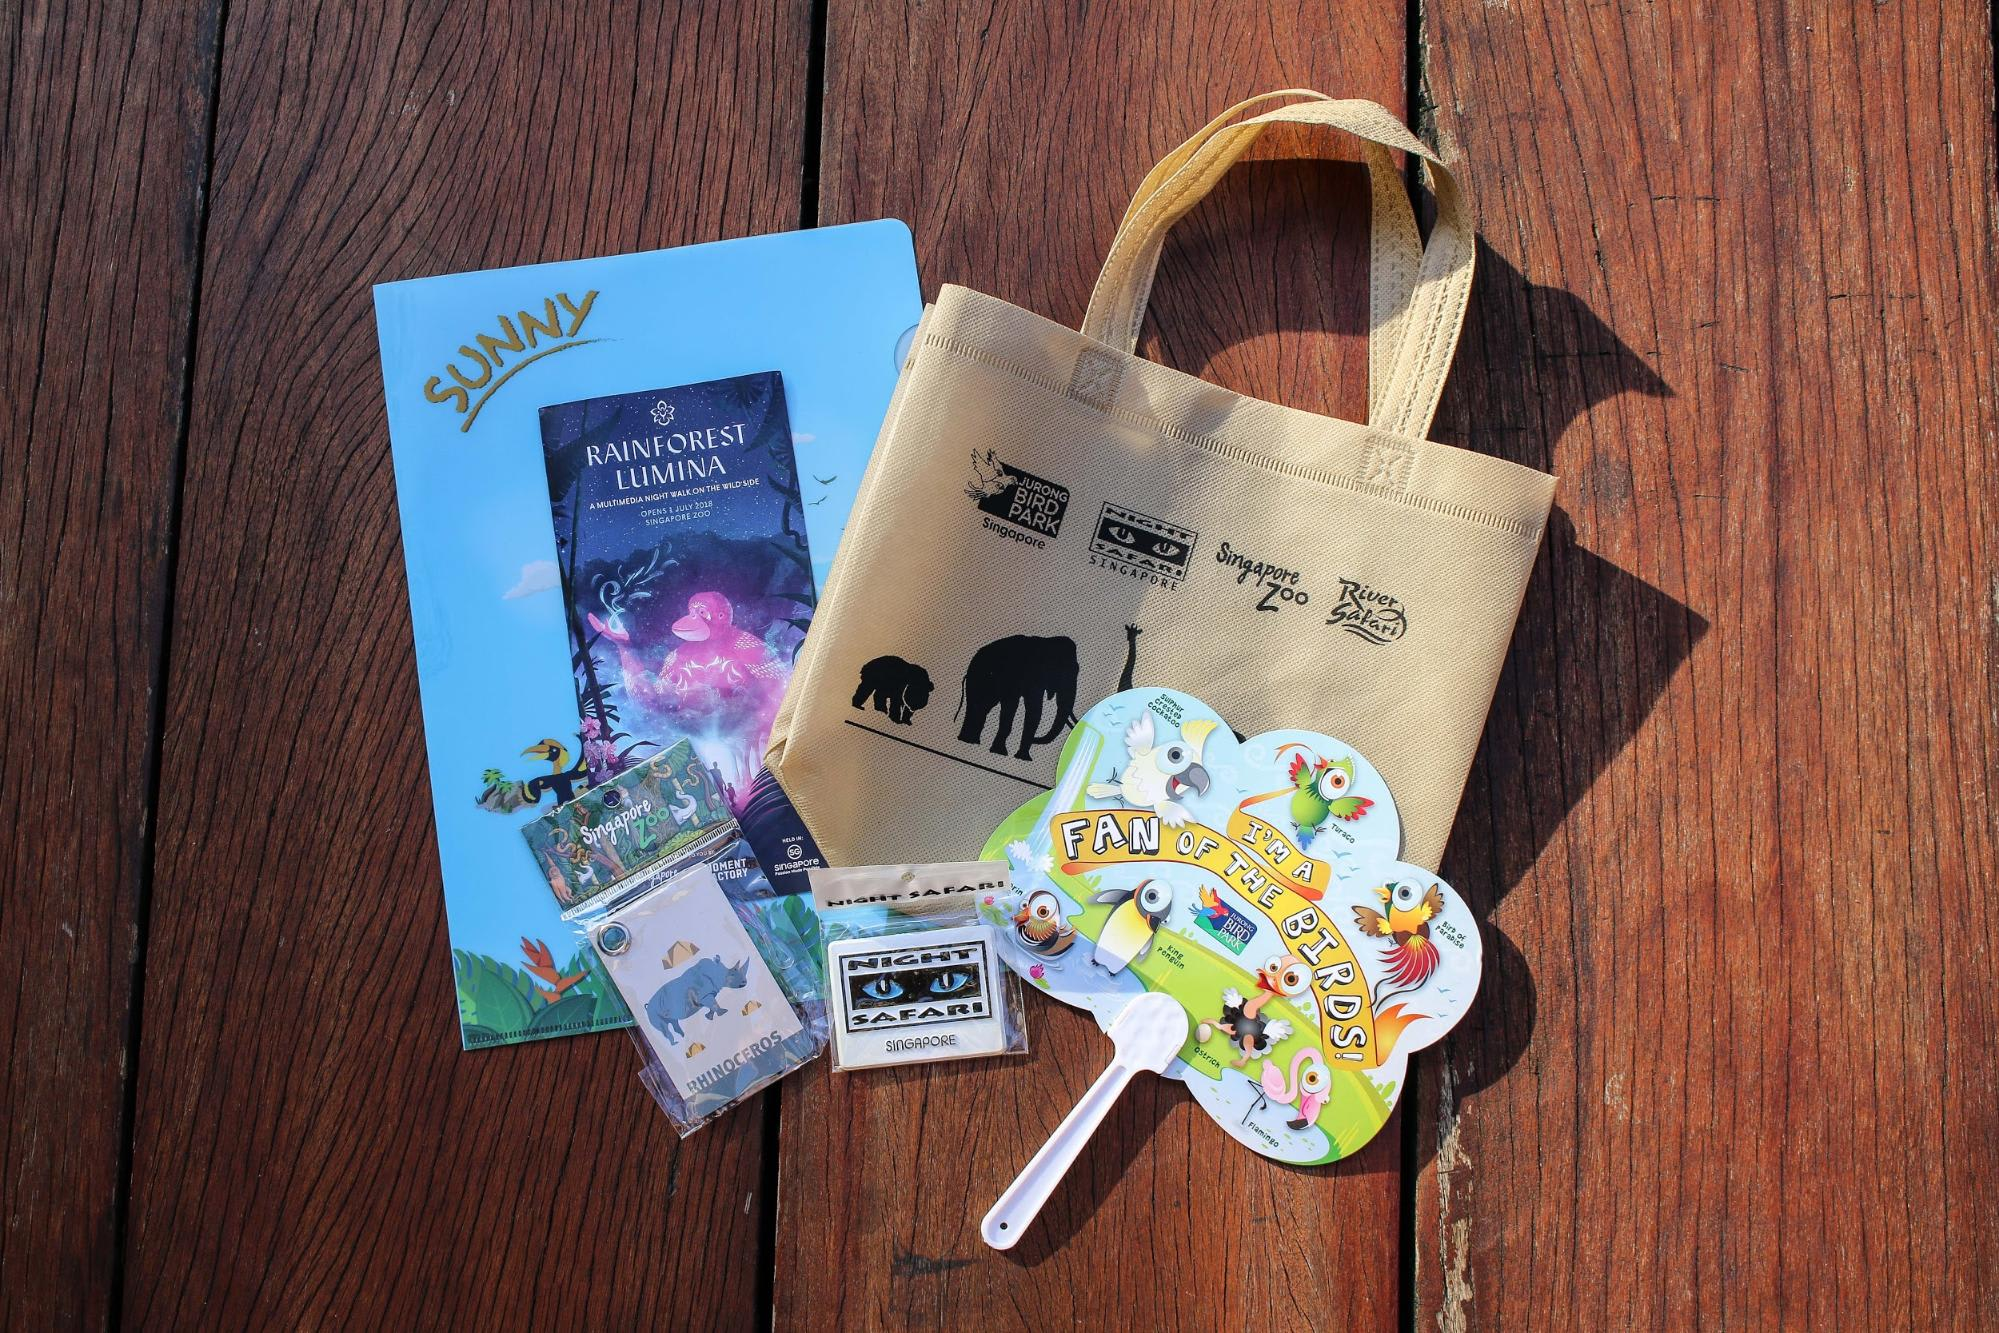 Rainforest Lumina Klook Goodie Bag